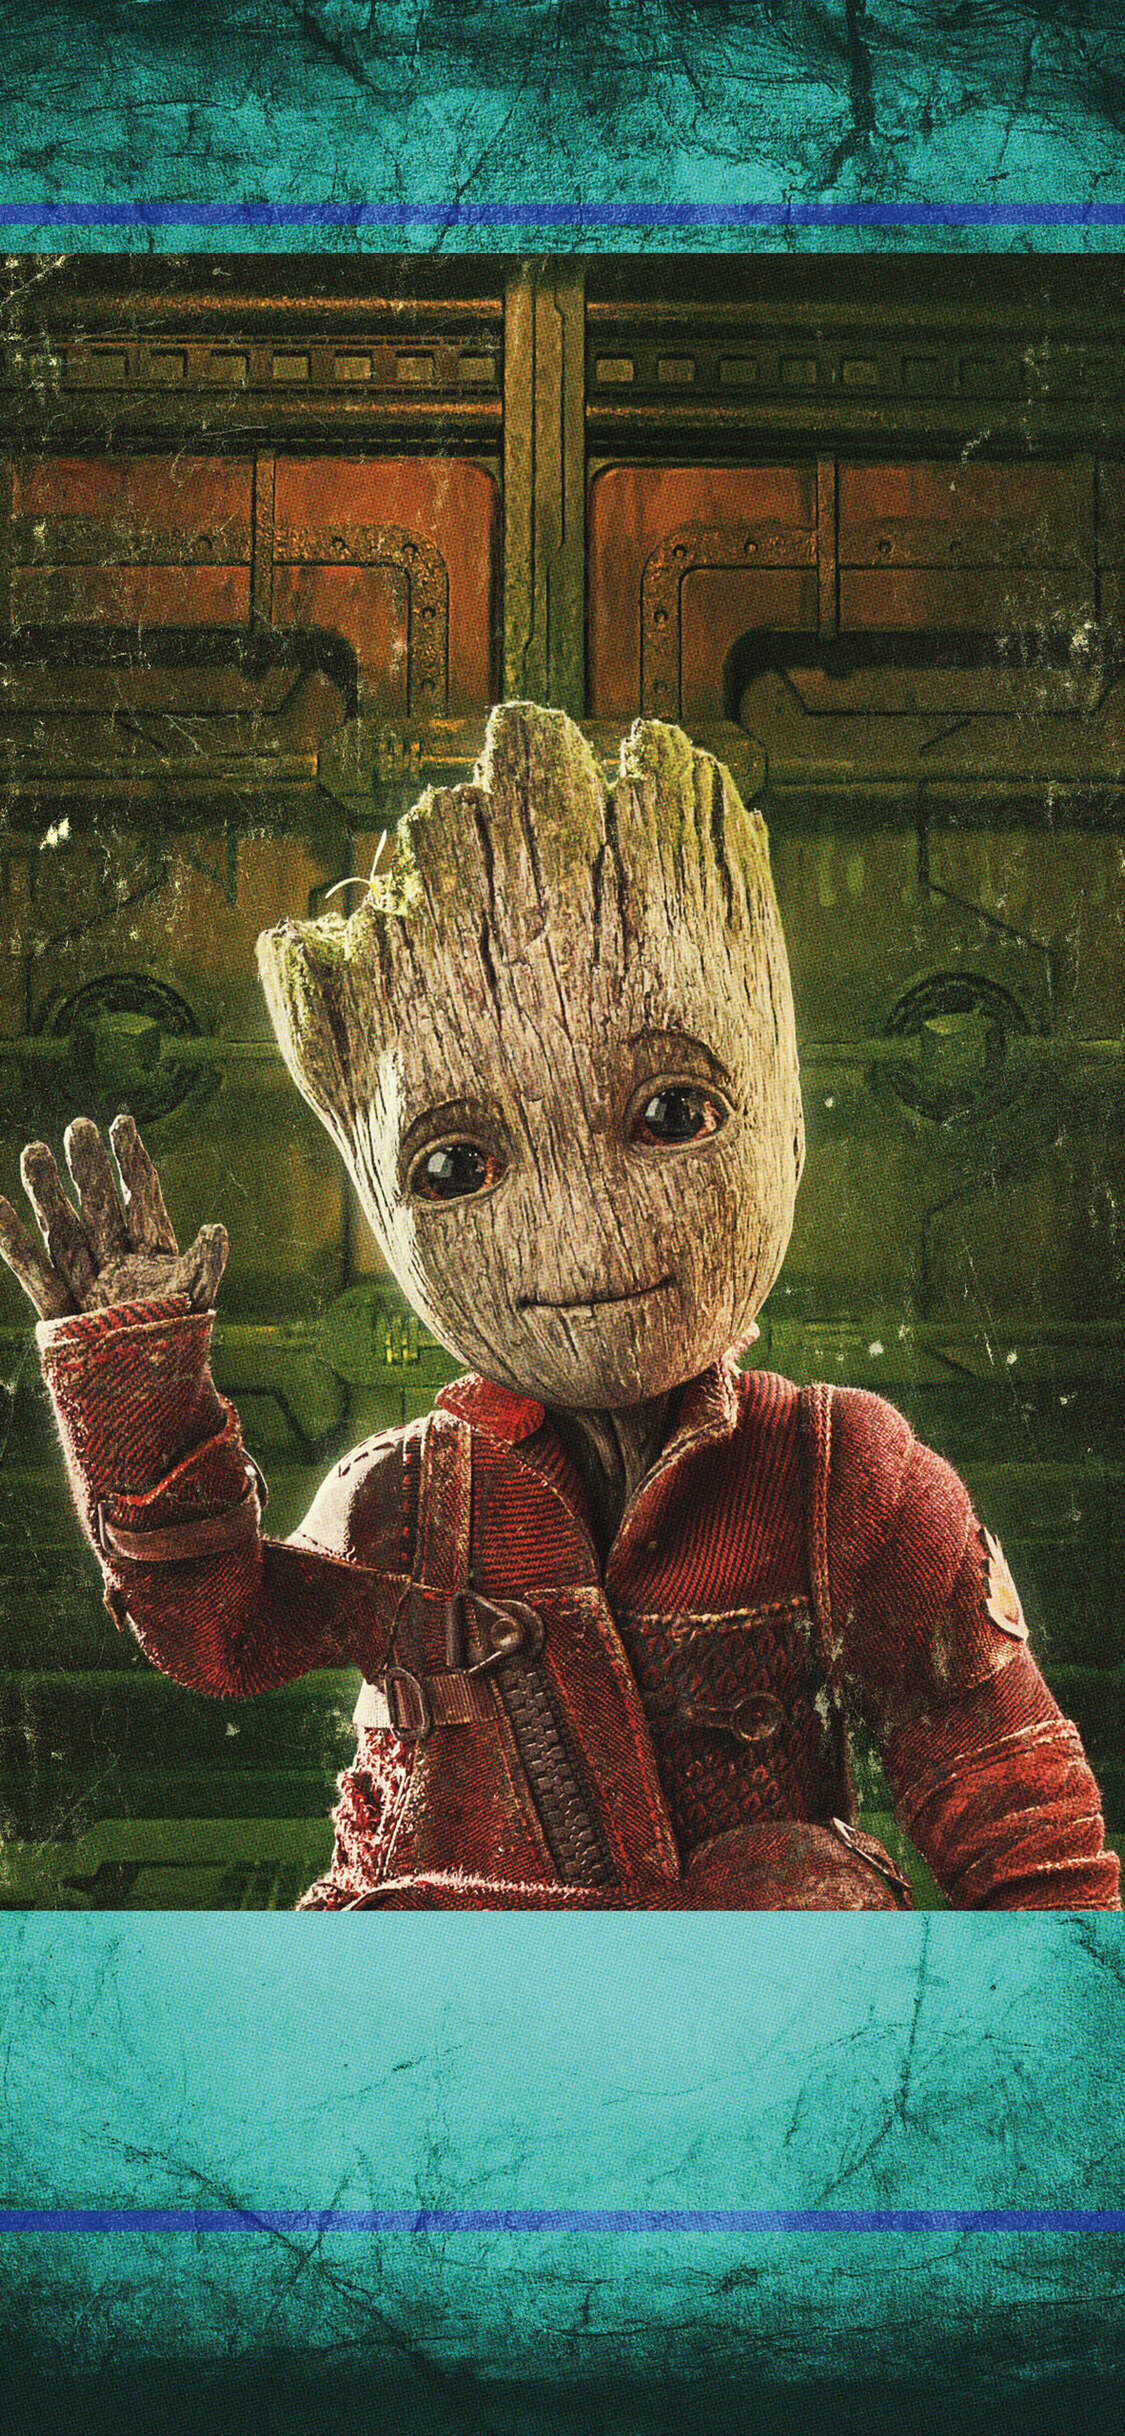 baby-groot-in-guardians-of-the-galaxy-vol-2-4k-bh.jpg